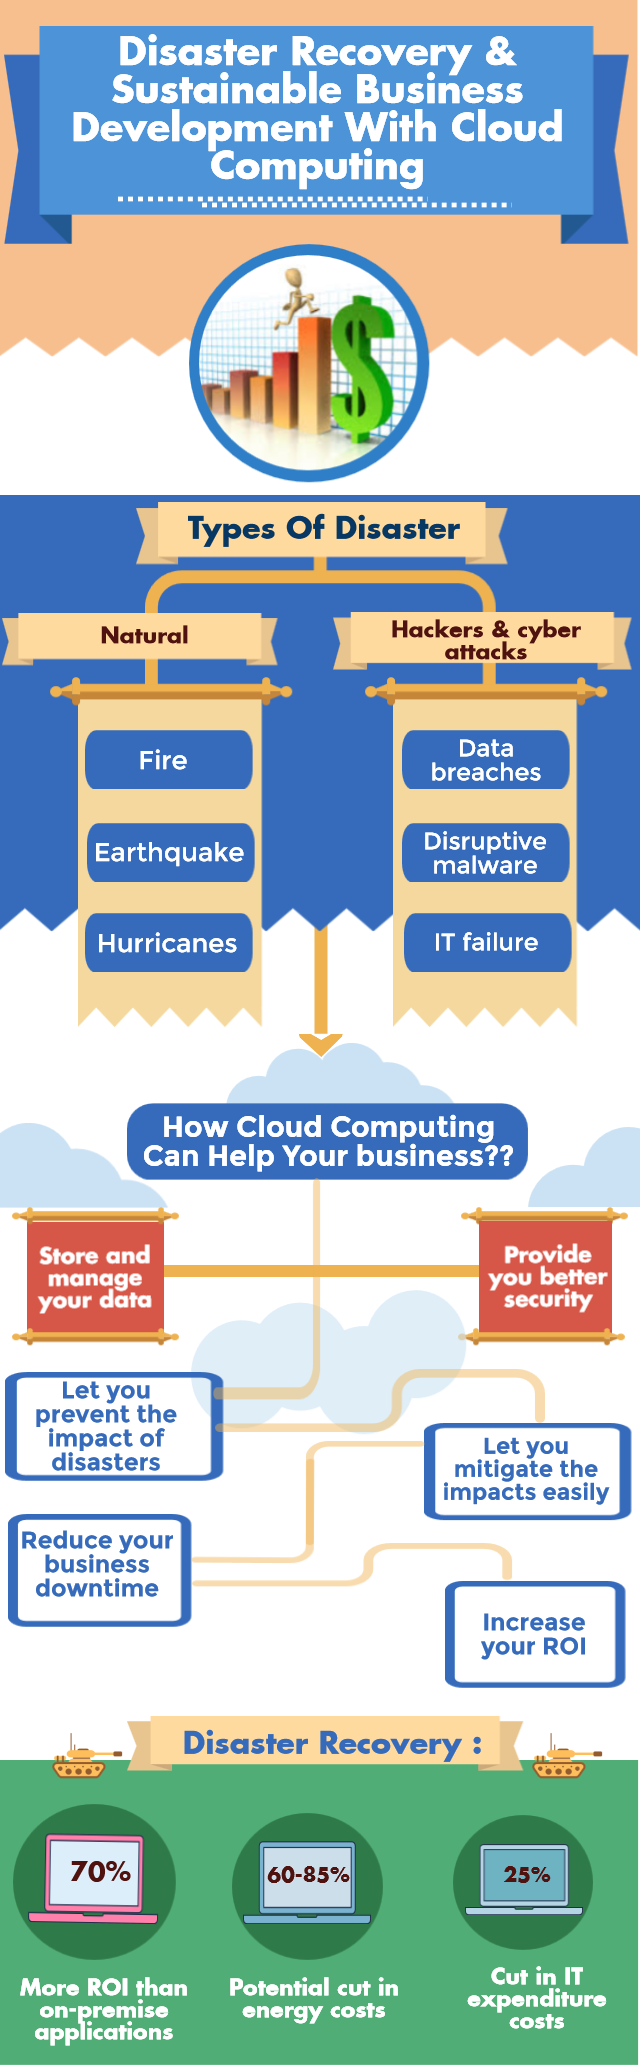 disaster-recovery-business-development-with-cloud-computing